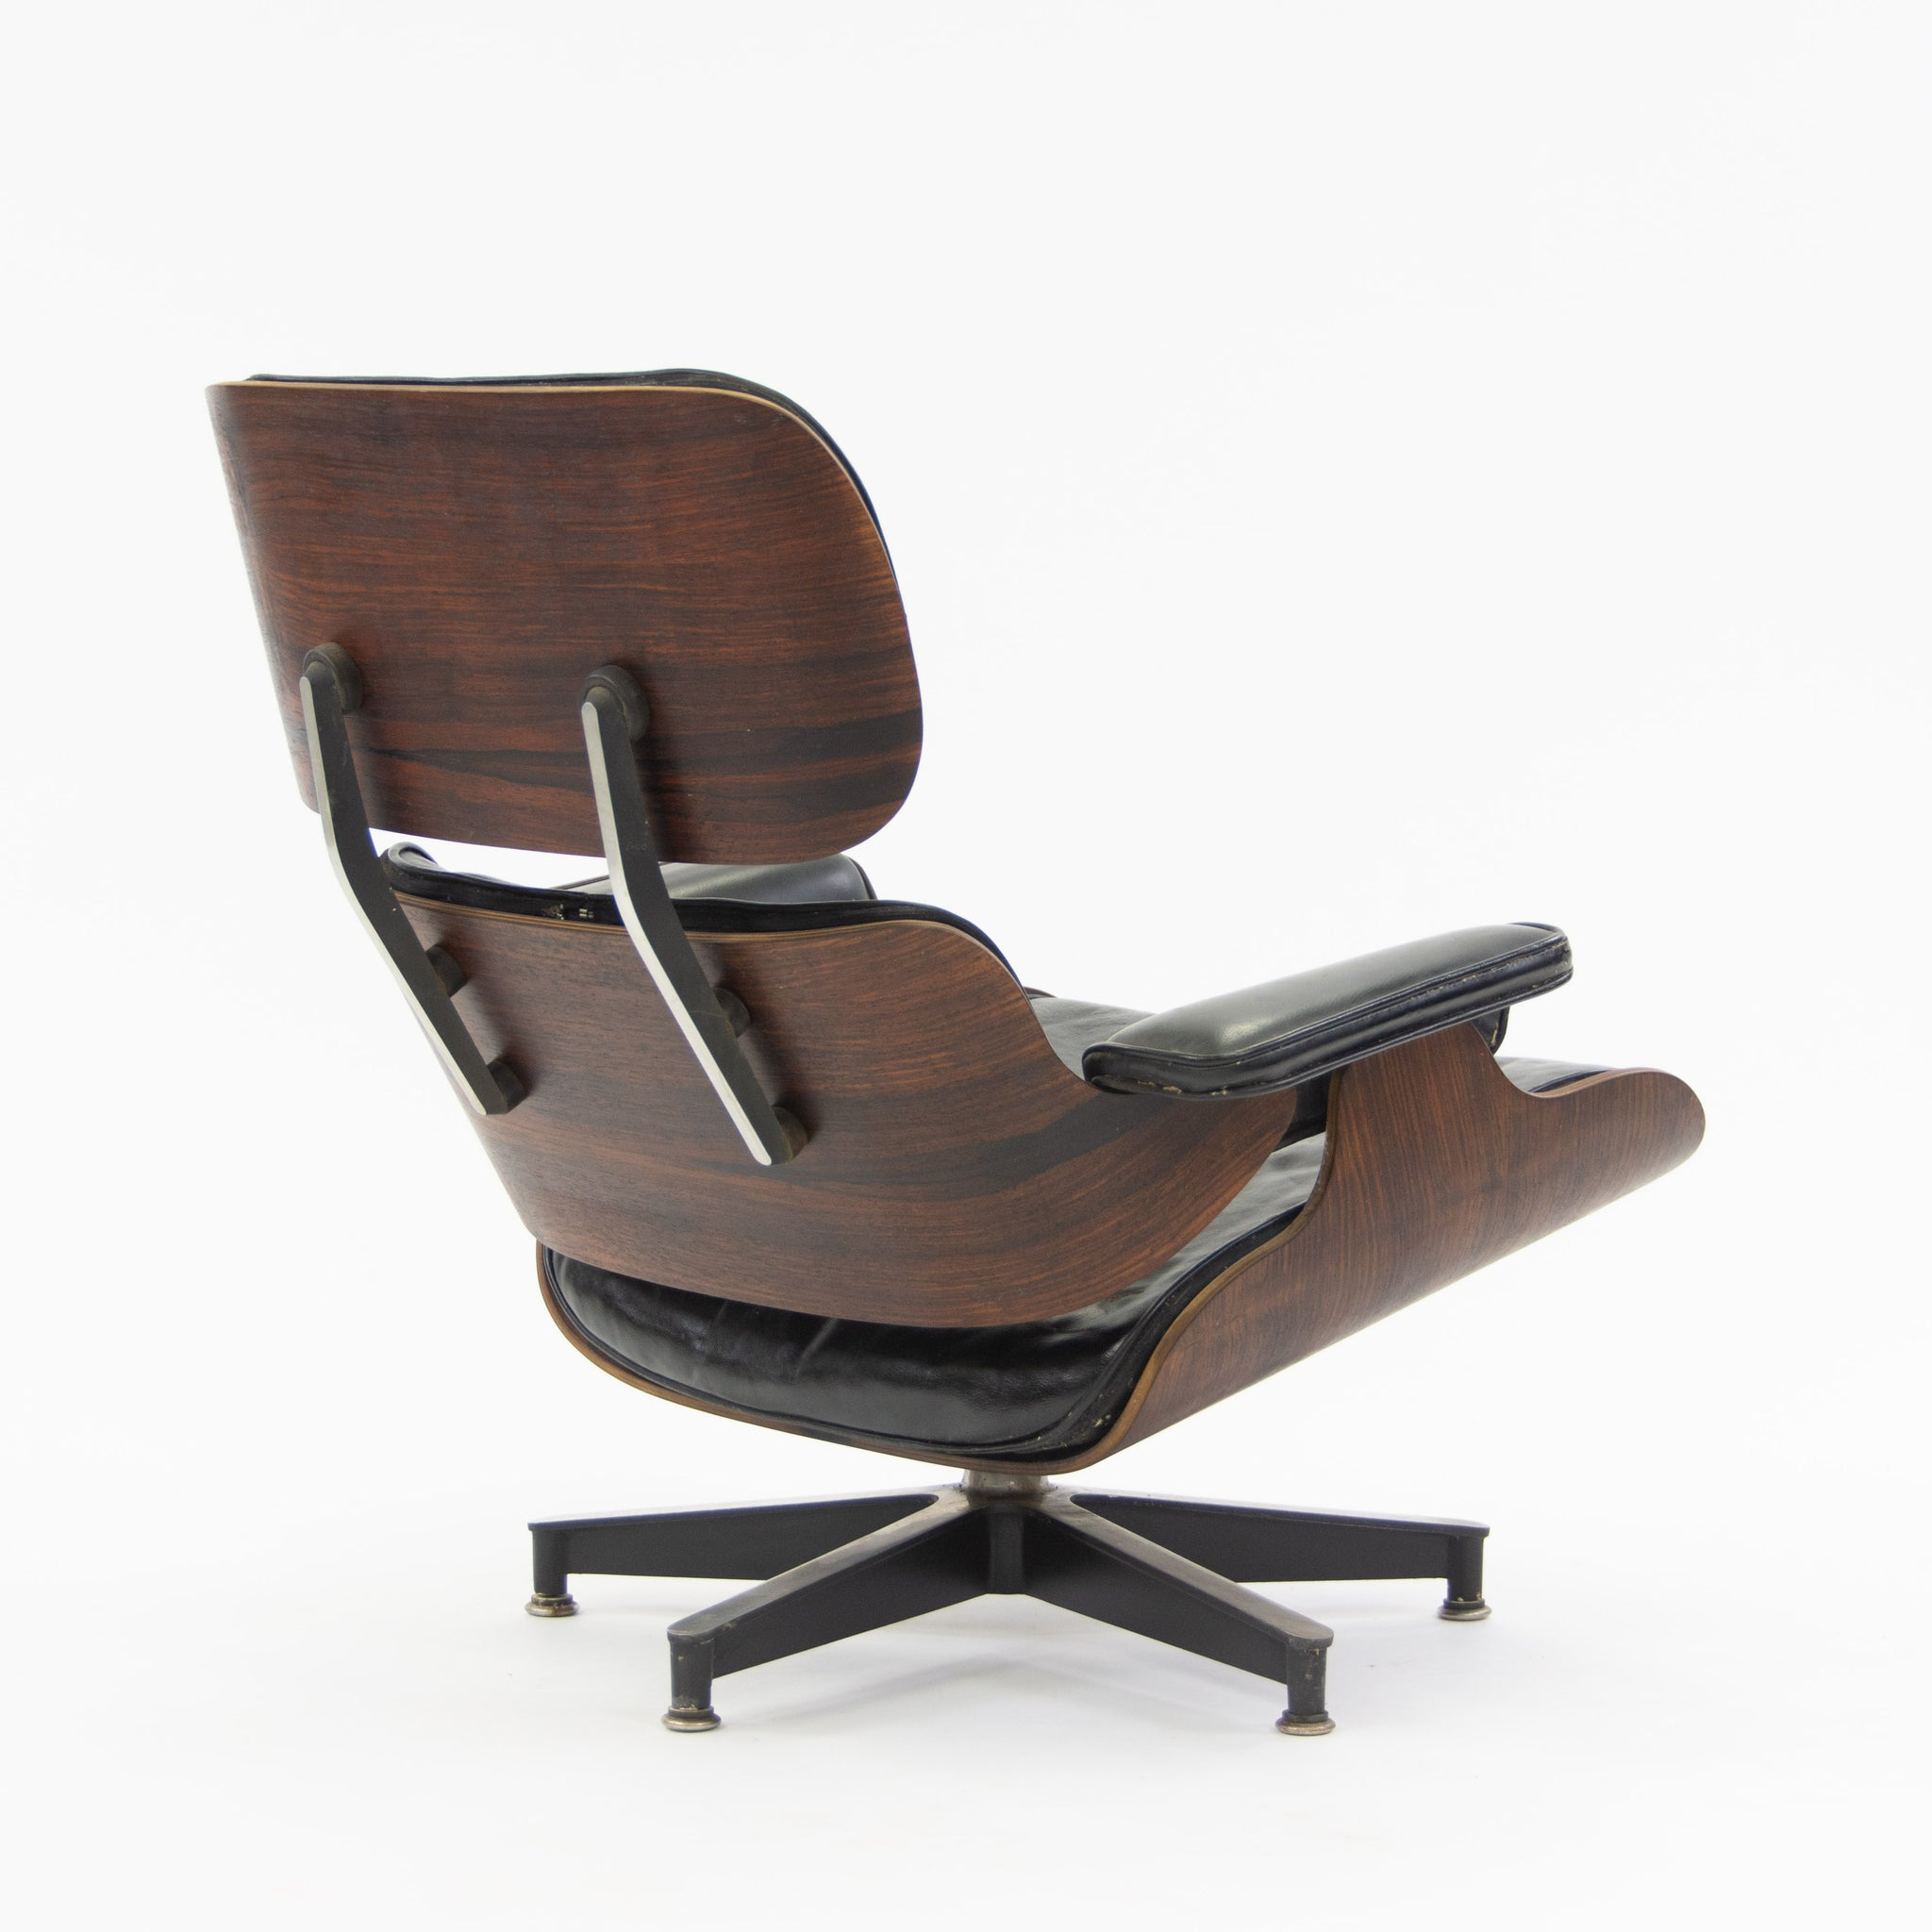 SOLD 1956 Herman Miller Eames Lounge Chair & Ottoman Rosewood 670 671 Black Leather